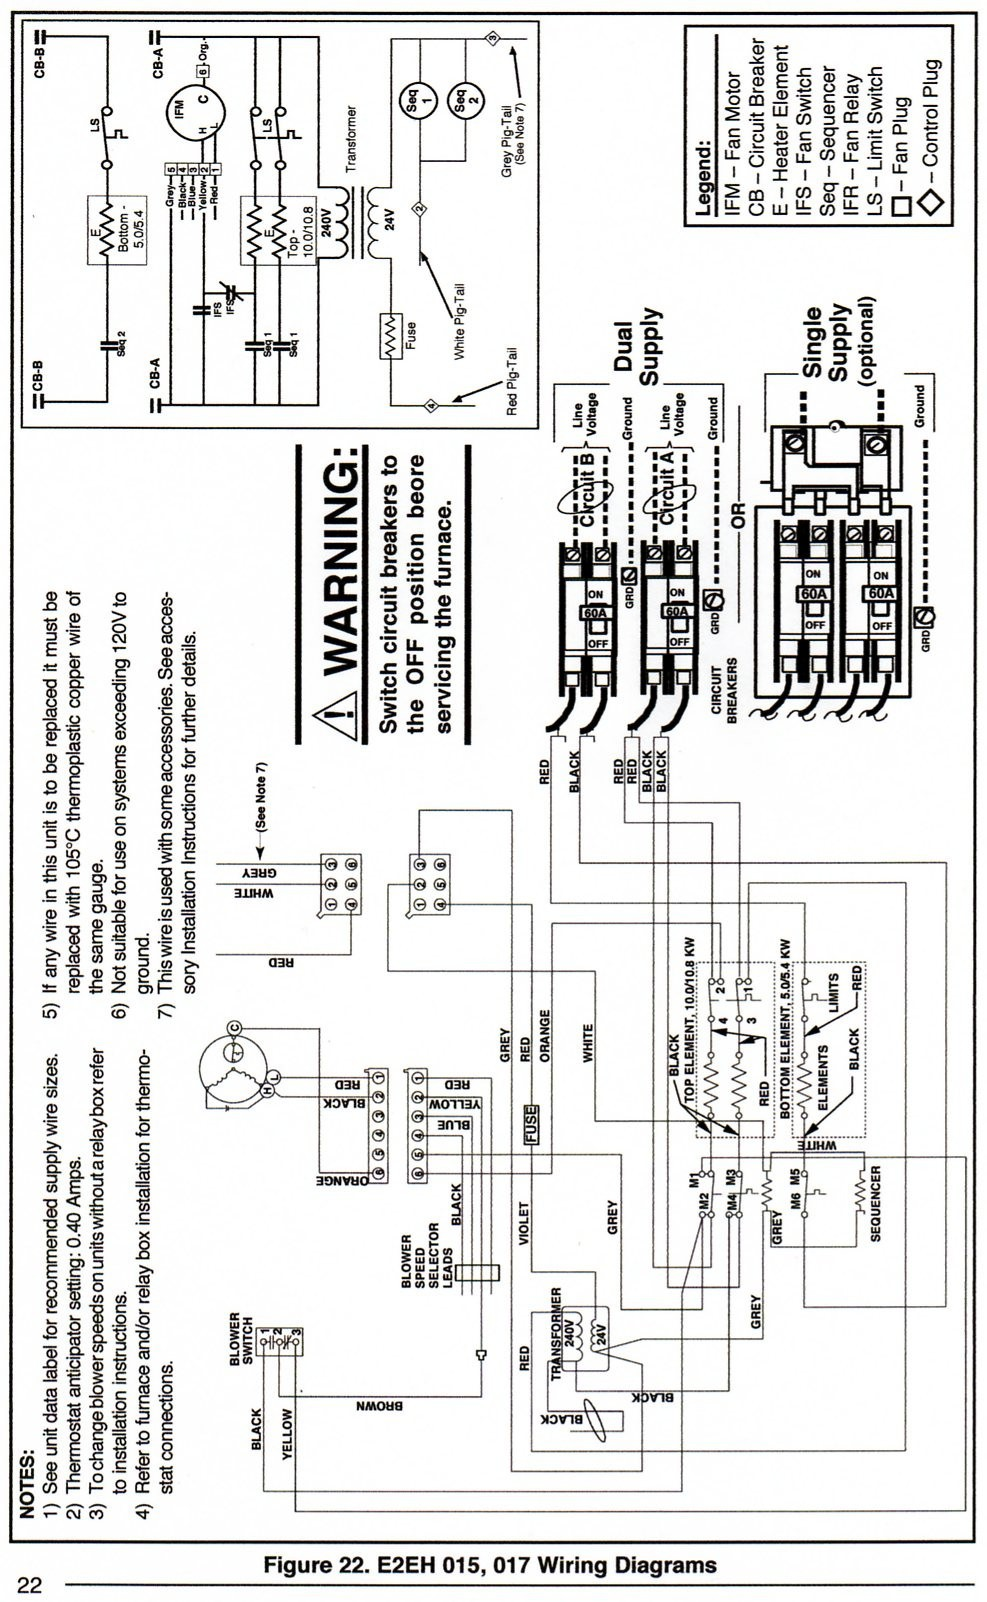 Stunning Intertherm Electric Furnace Wiring Diagram 80 About Remodel